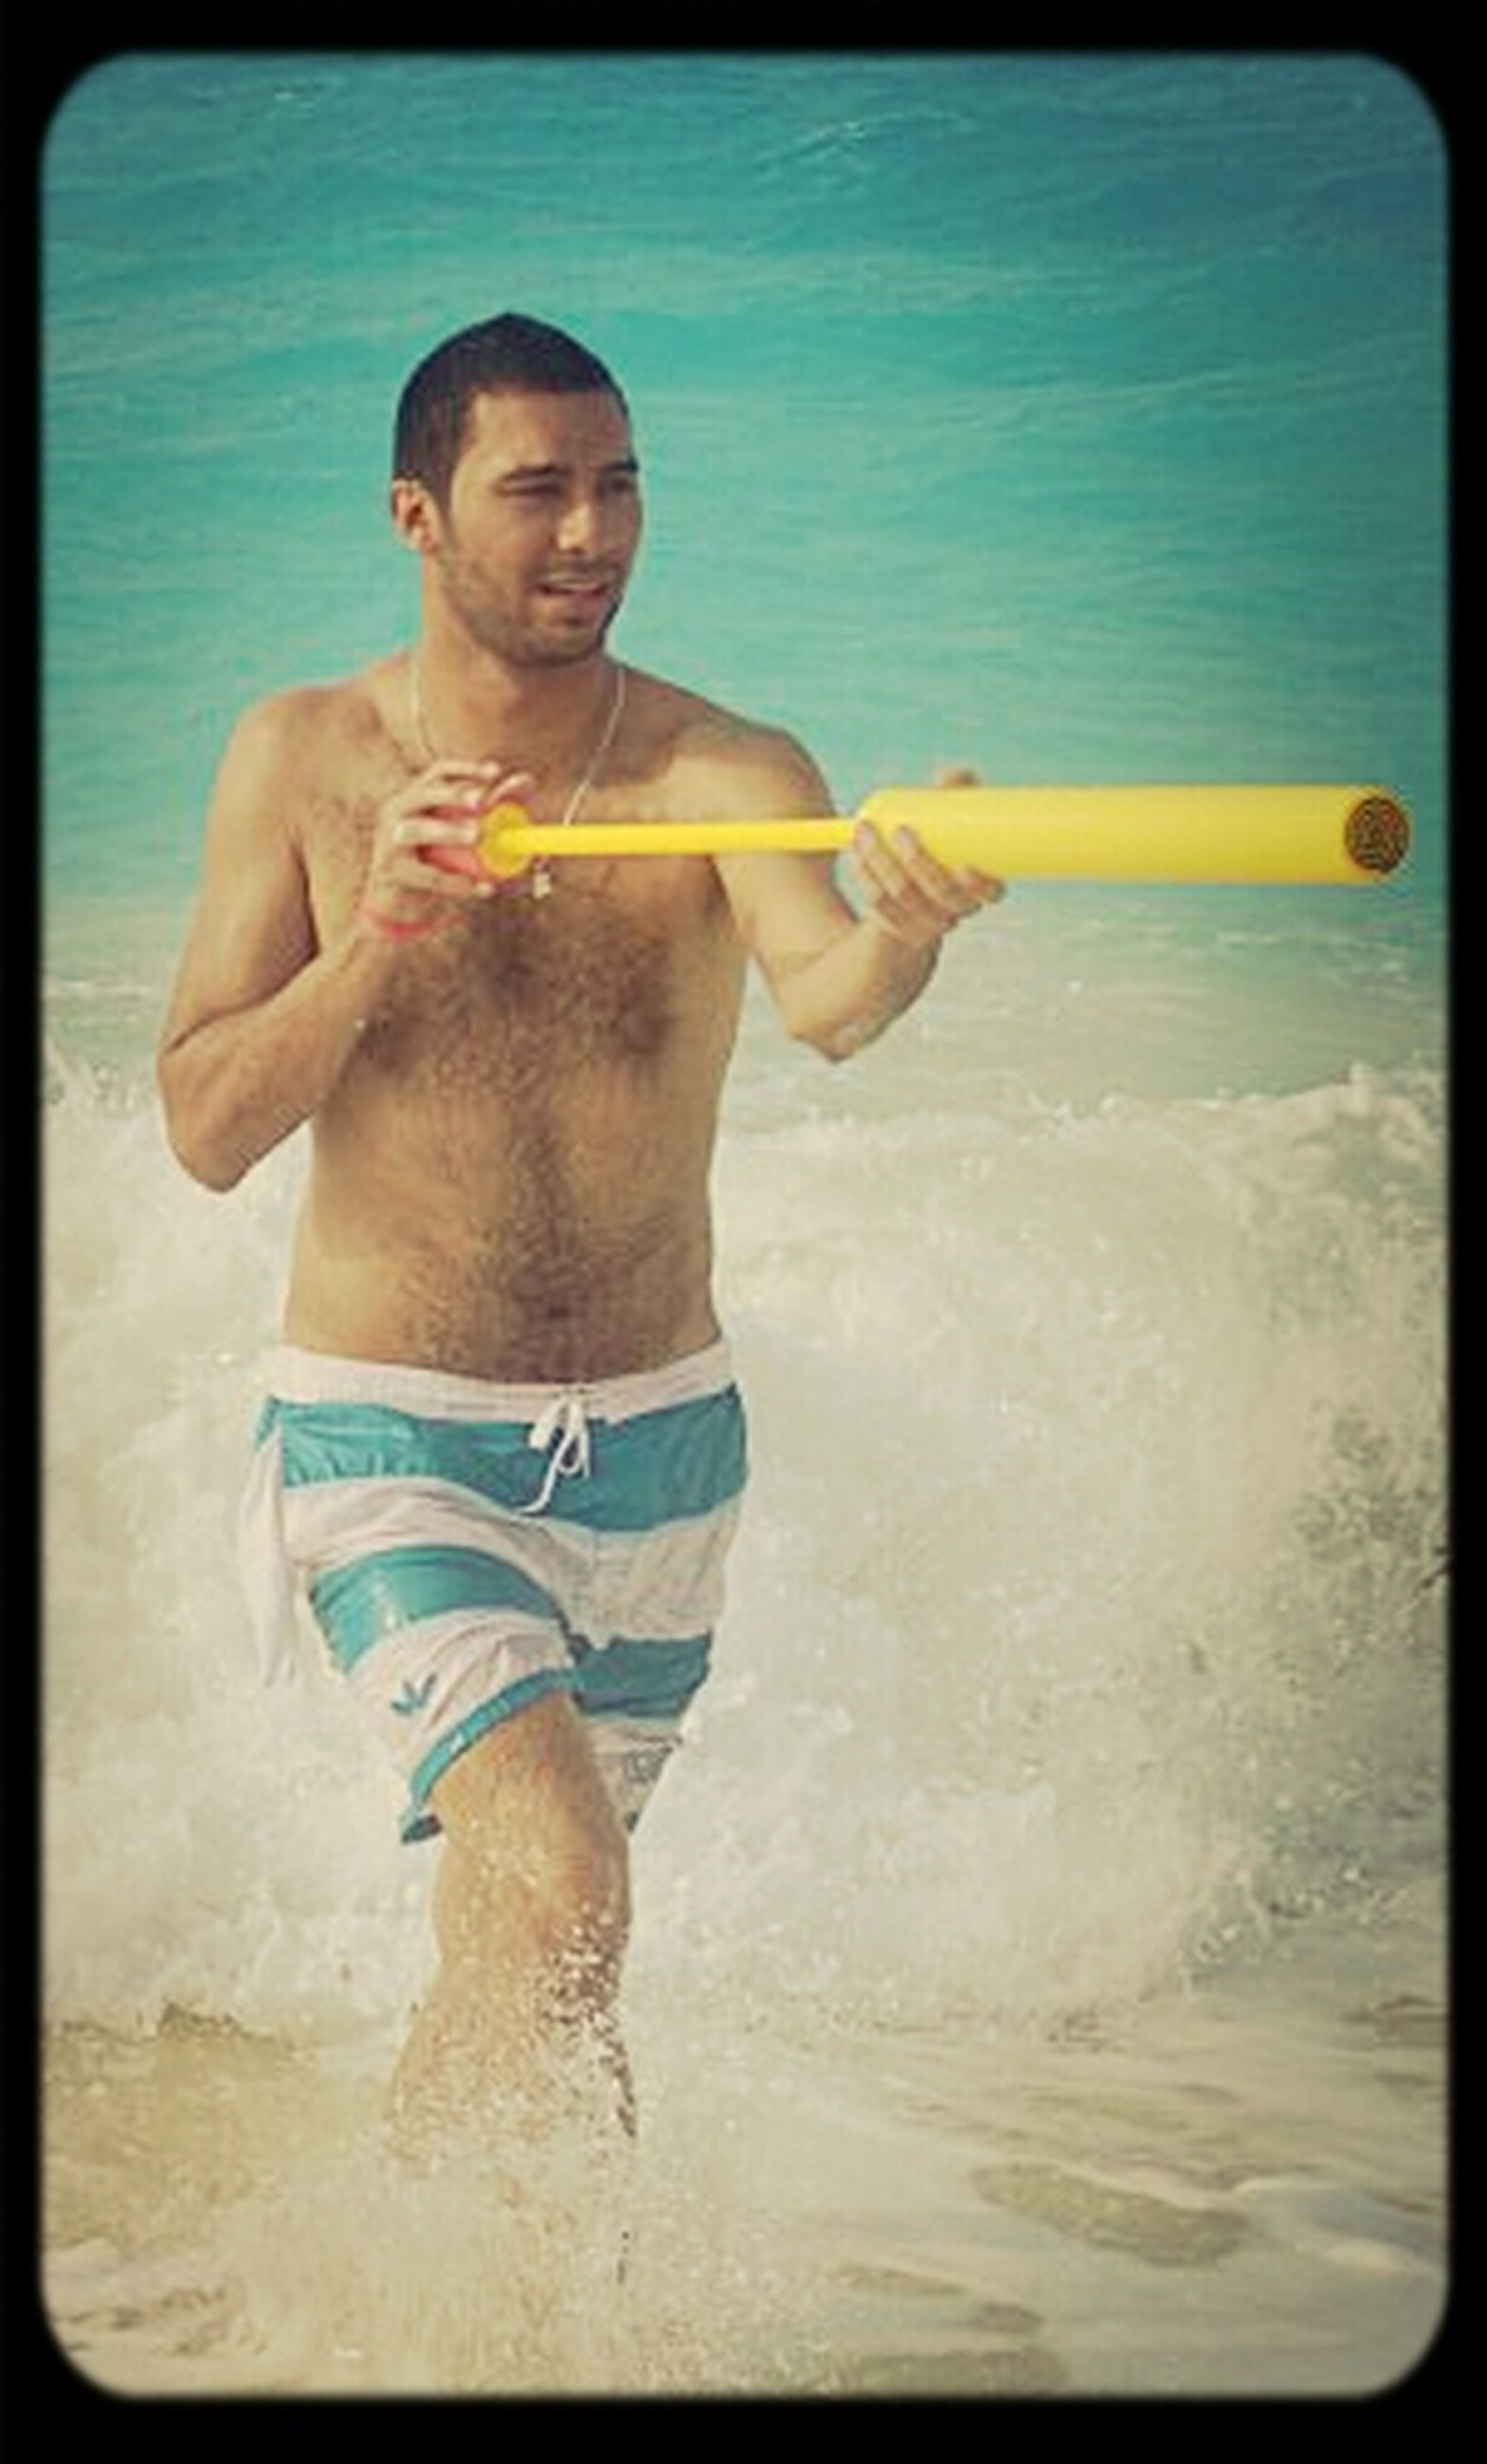 transfer print, water, beach, sea, lifestyles, leisure activity, auto post production filter, person, sand, shore, full length, childhood, elementary age, vacations, horizon over water, boys, casual clothing, shirtless